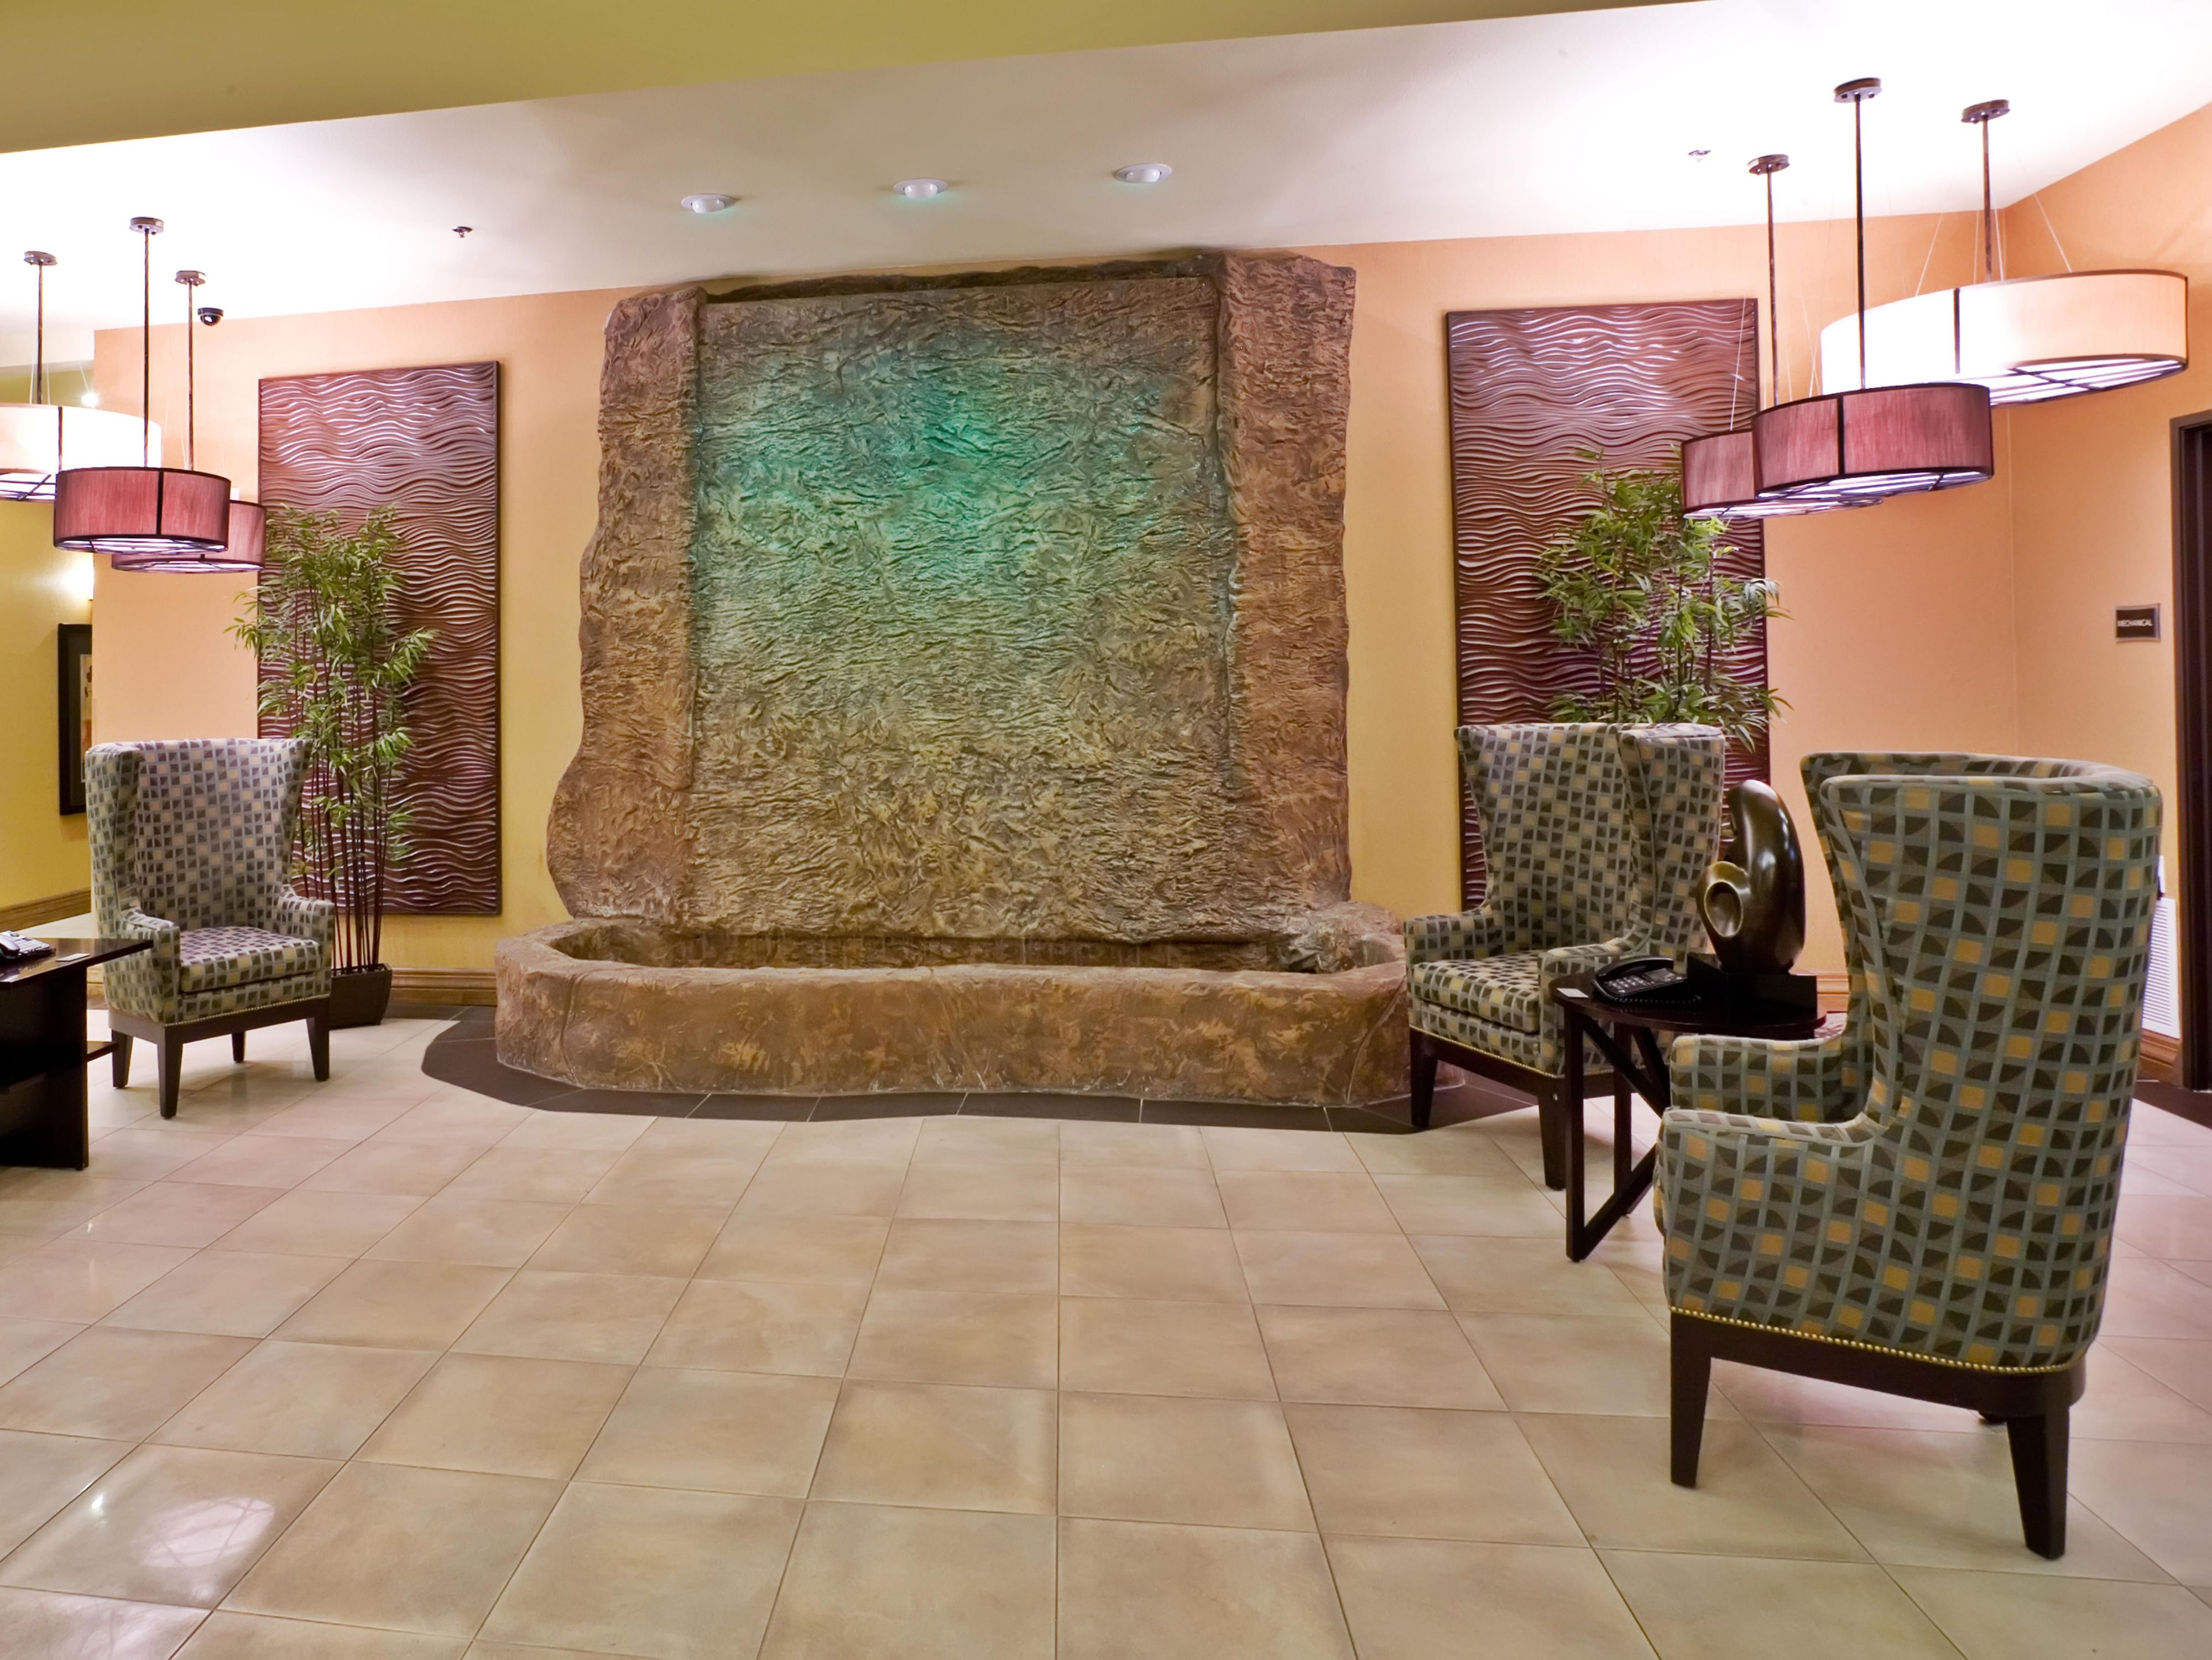 A rock water wall is the focal point of the lobby.